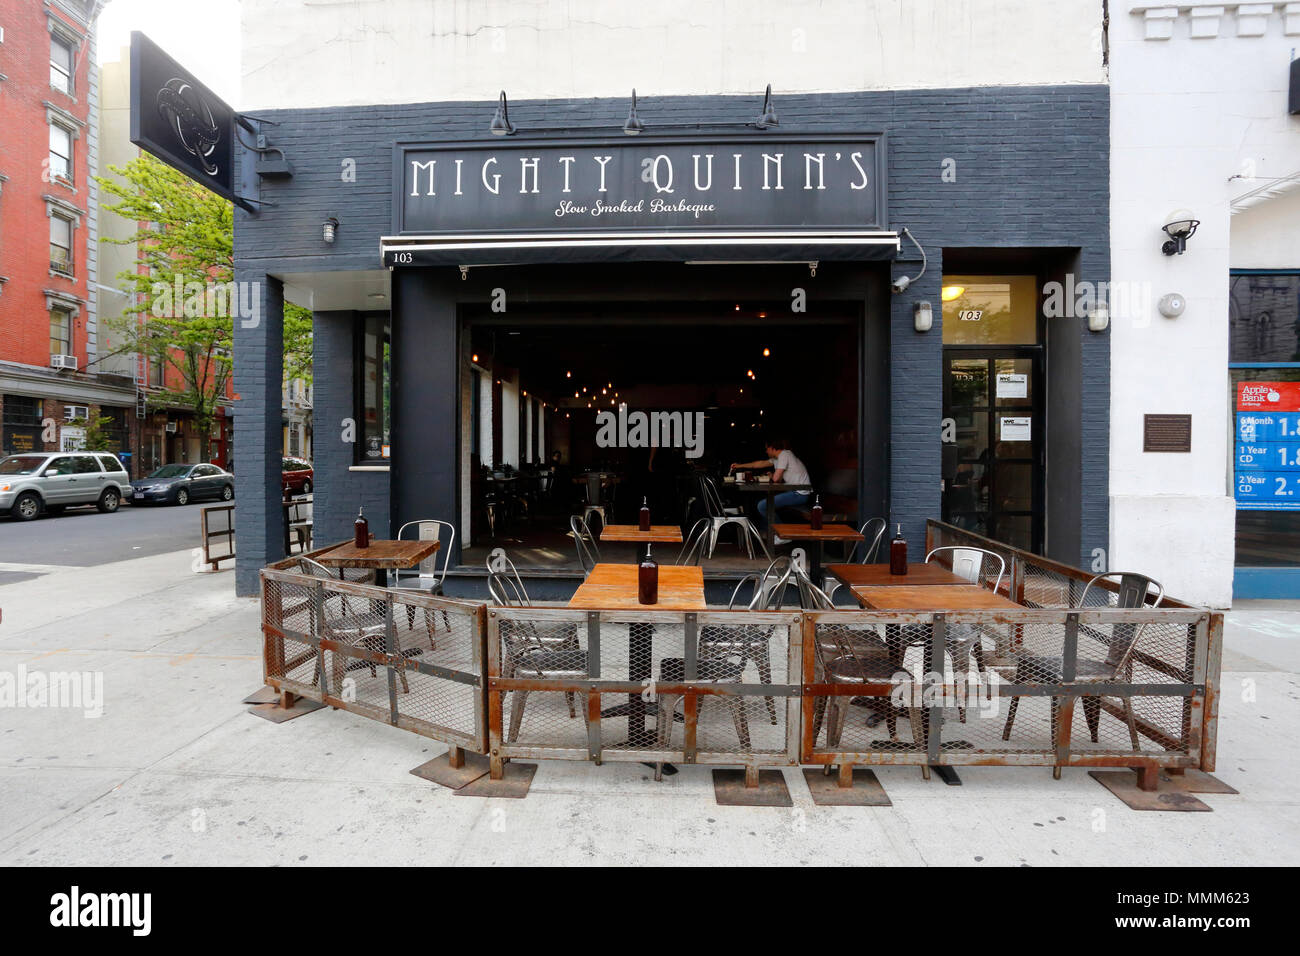 Mighty Quinn's Barbeque, 103 Second Ave, New York, NY - Stock Image